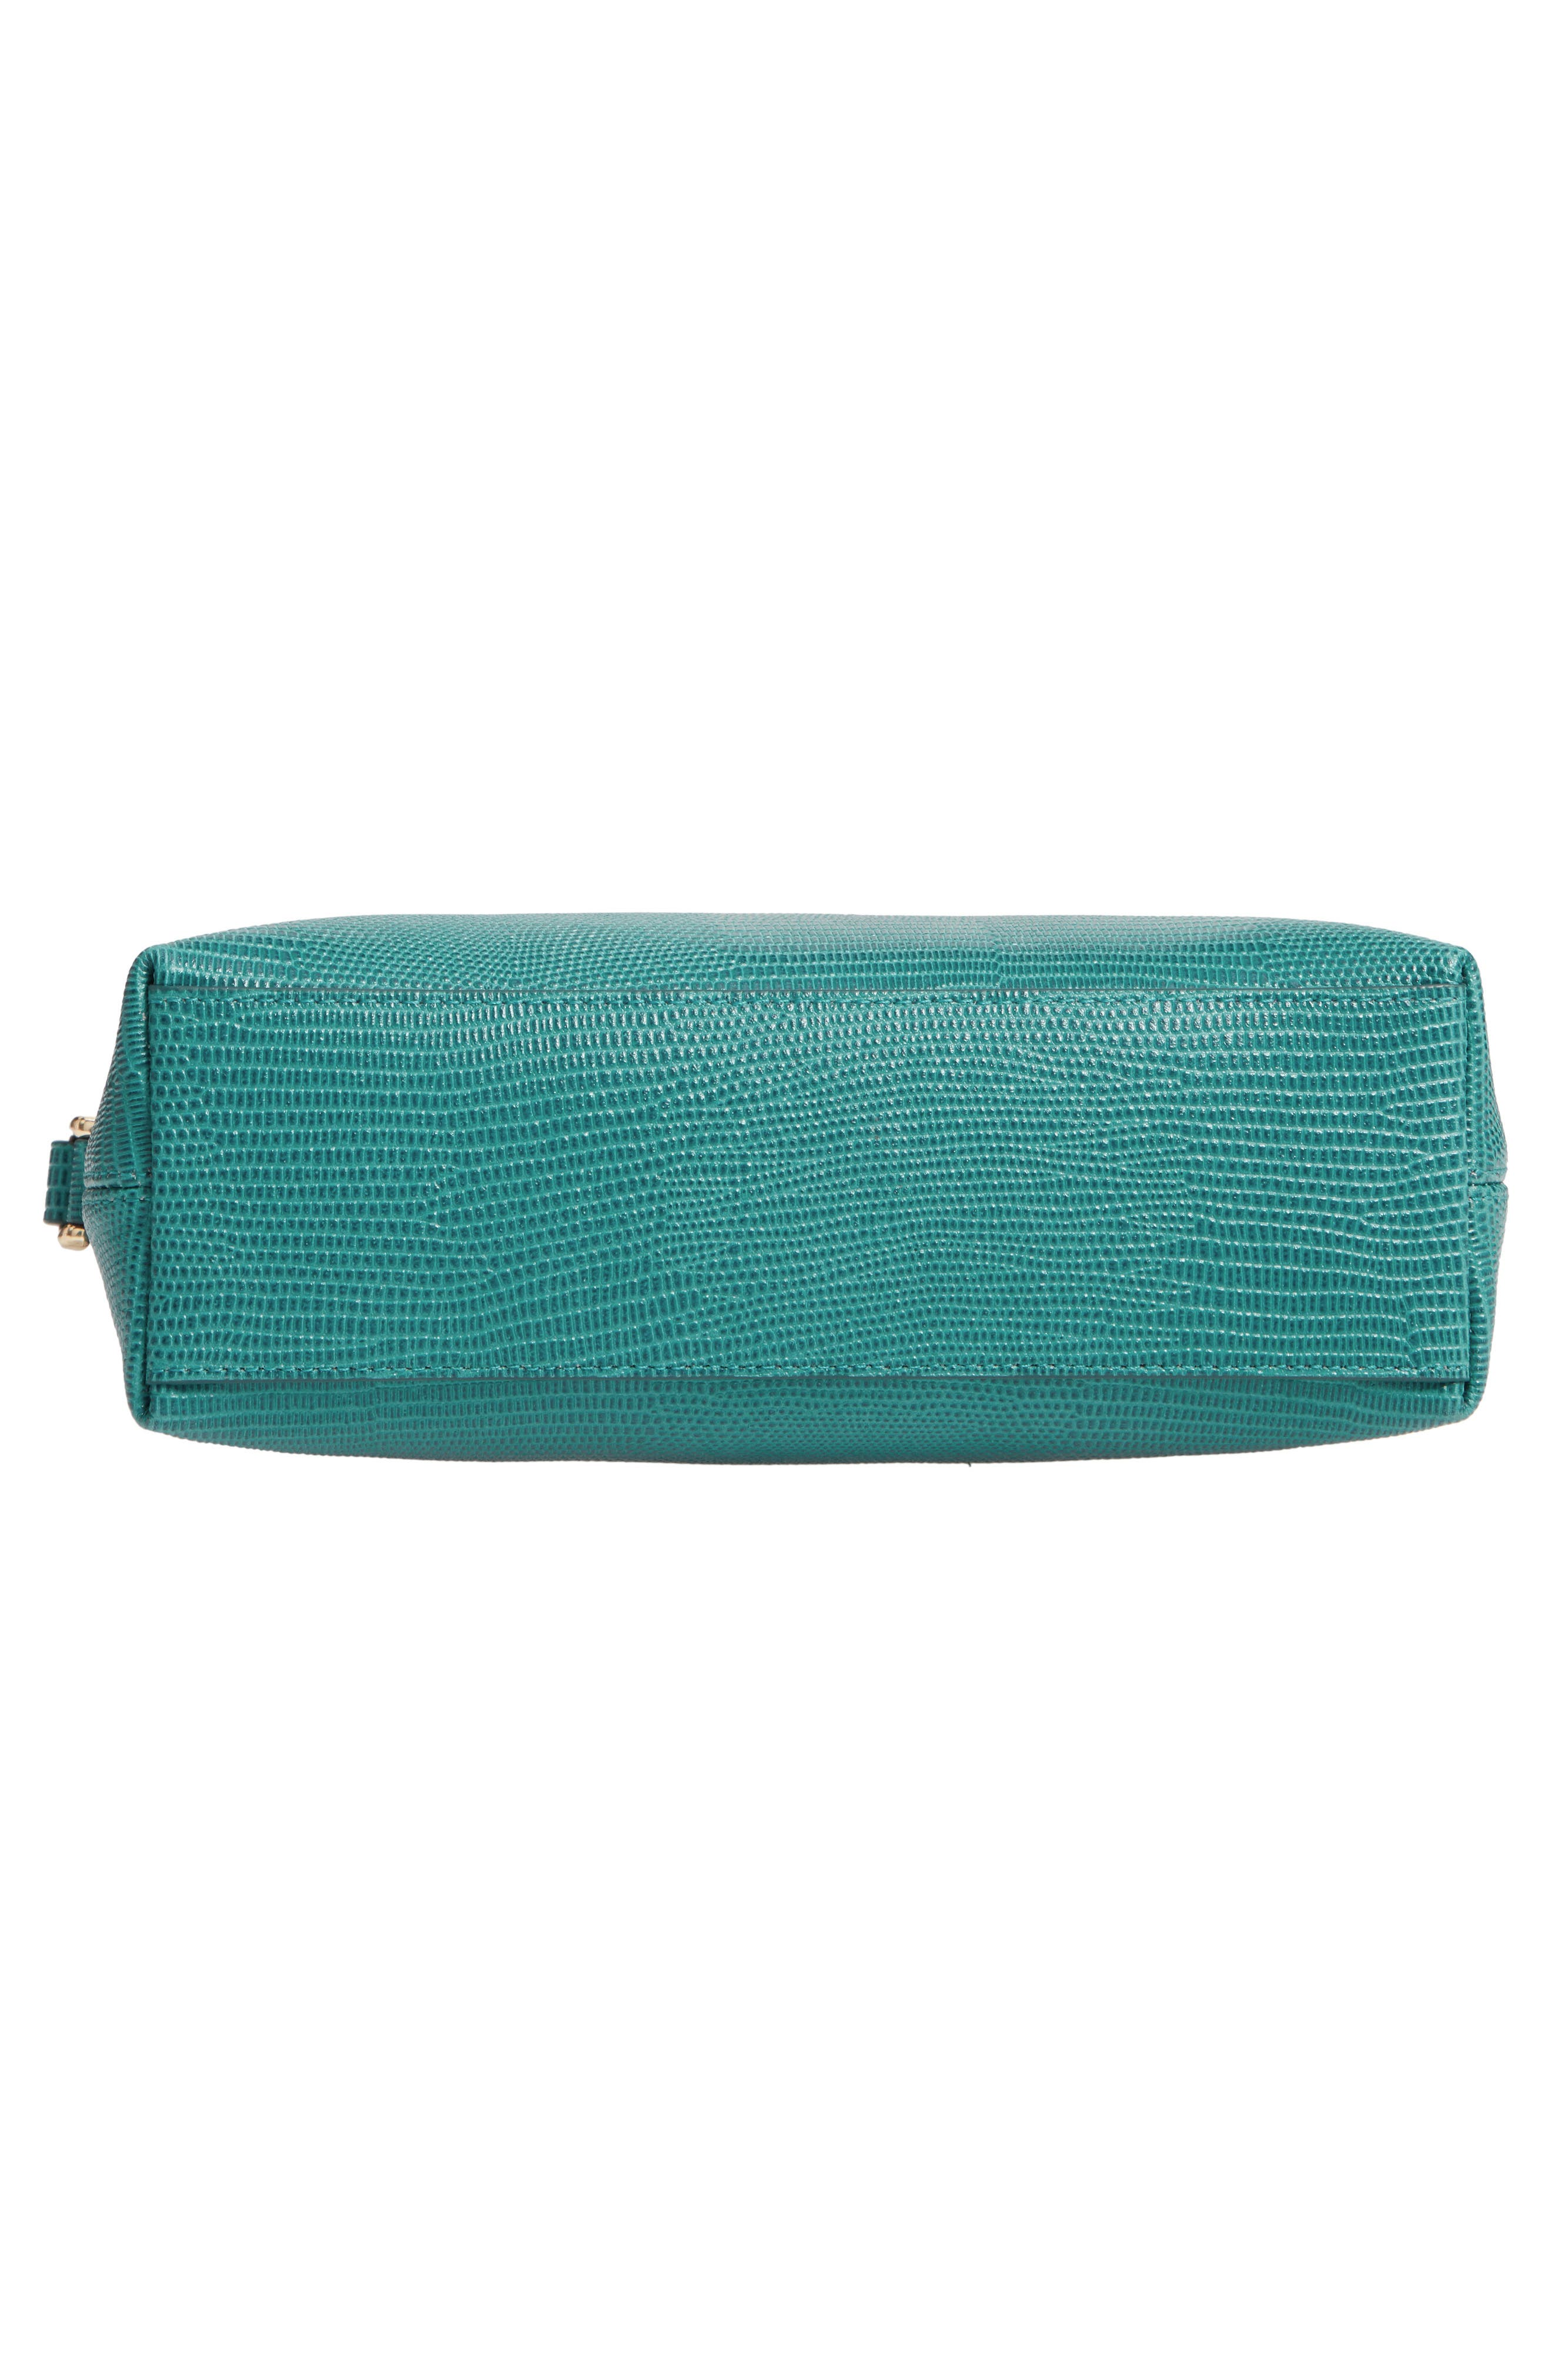 Isobel Half Moon Leather Crossbody Bag,                             Alternate thumbnail 6, color,                             TEAL HARBOR